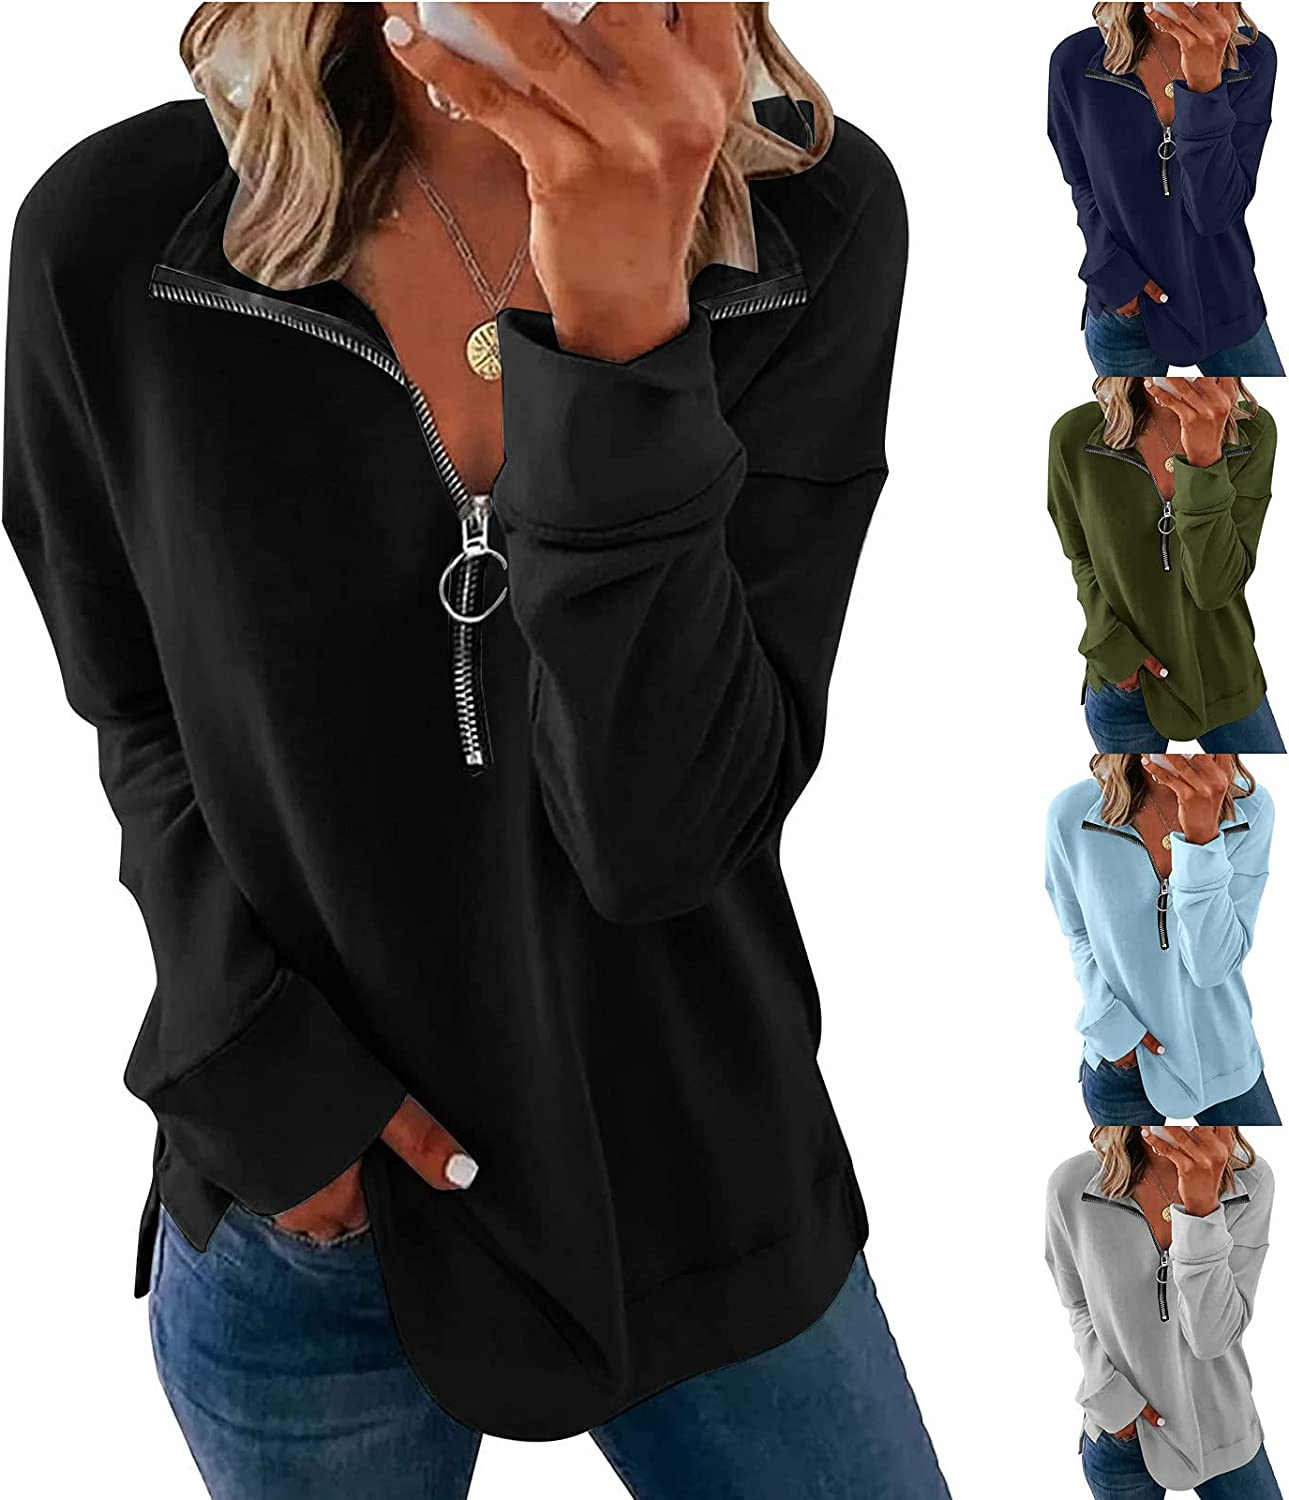 Oversized Womens Half Zip up Tops: Long Sleeve Solid Loose Fit Blouses Flowy Hem Shirts Pullover Tshirts Sweatshirt